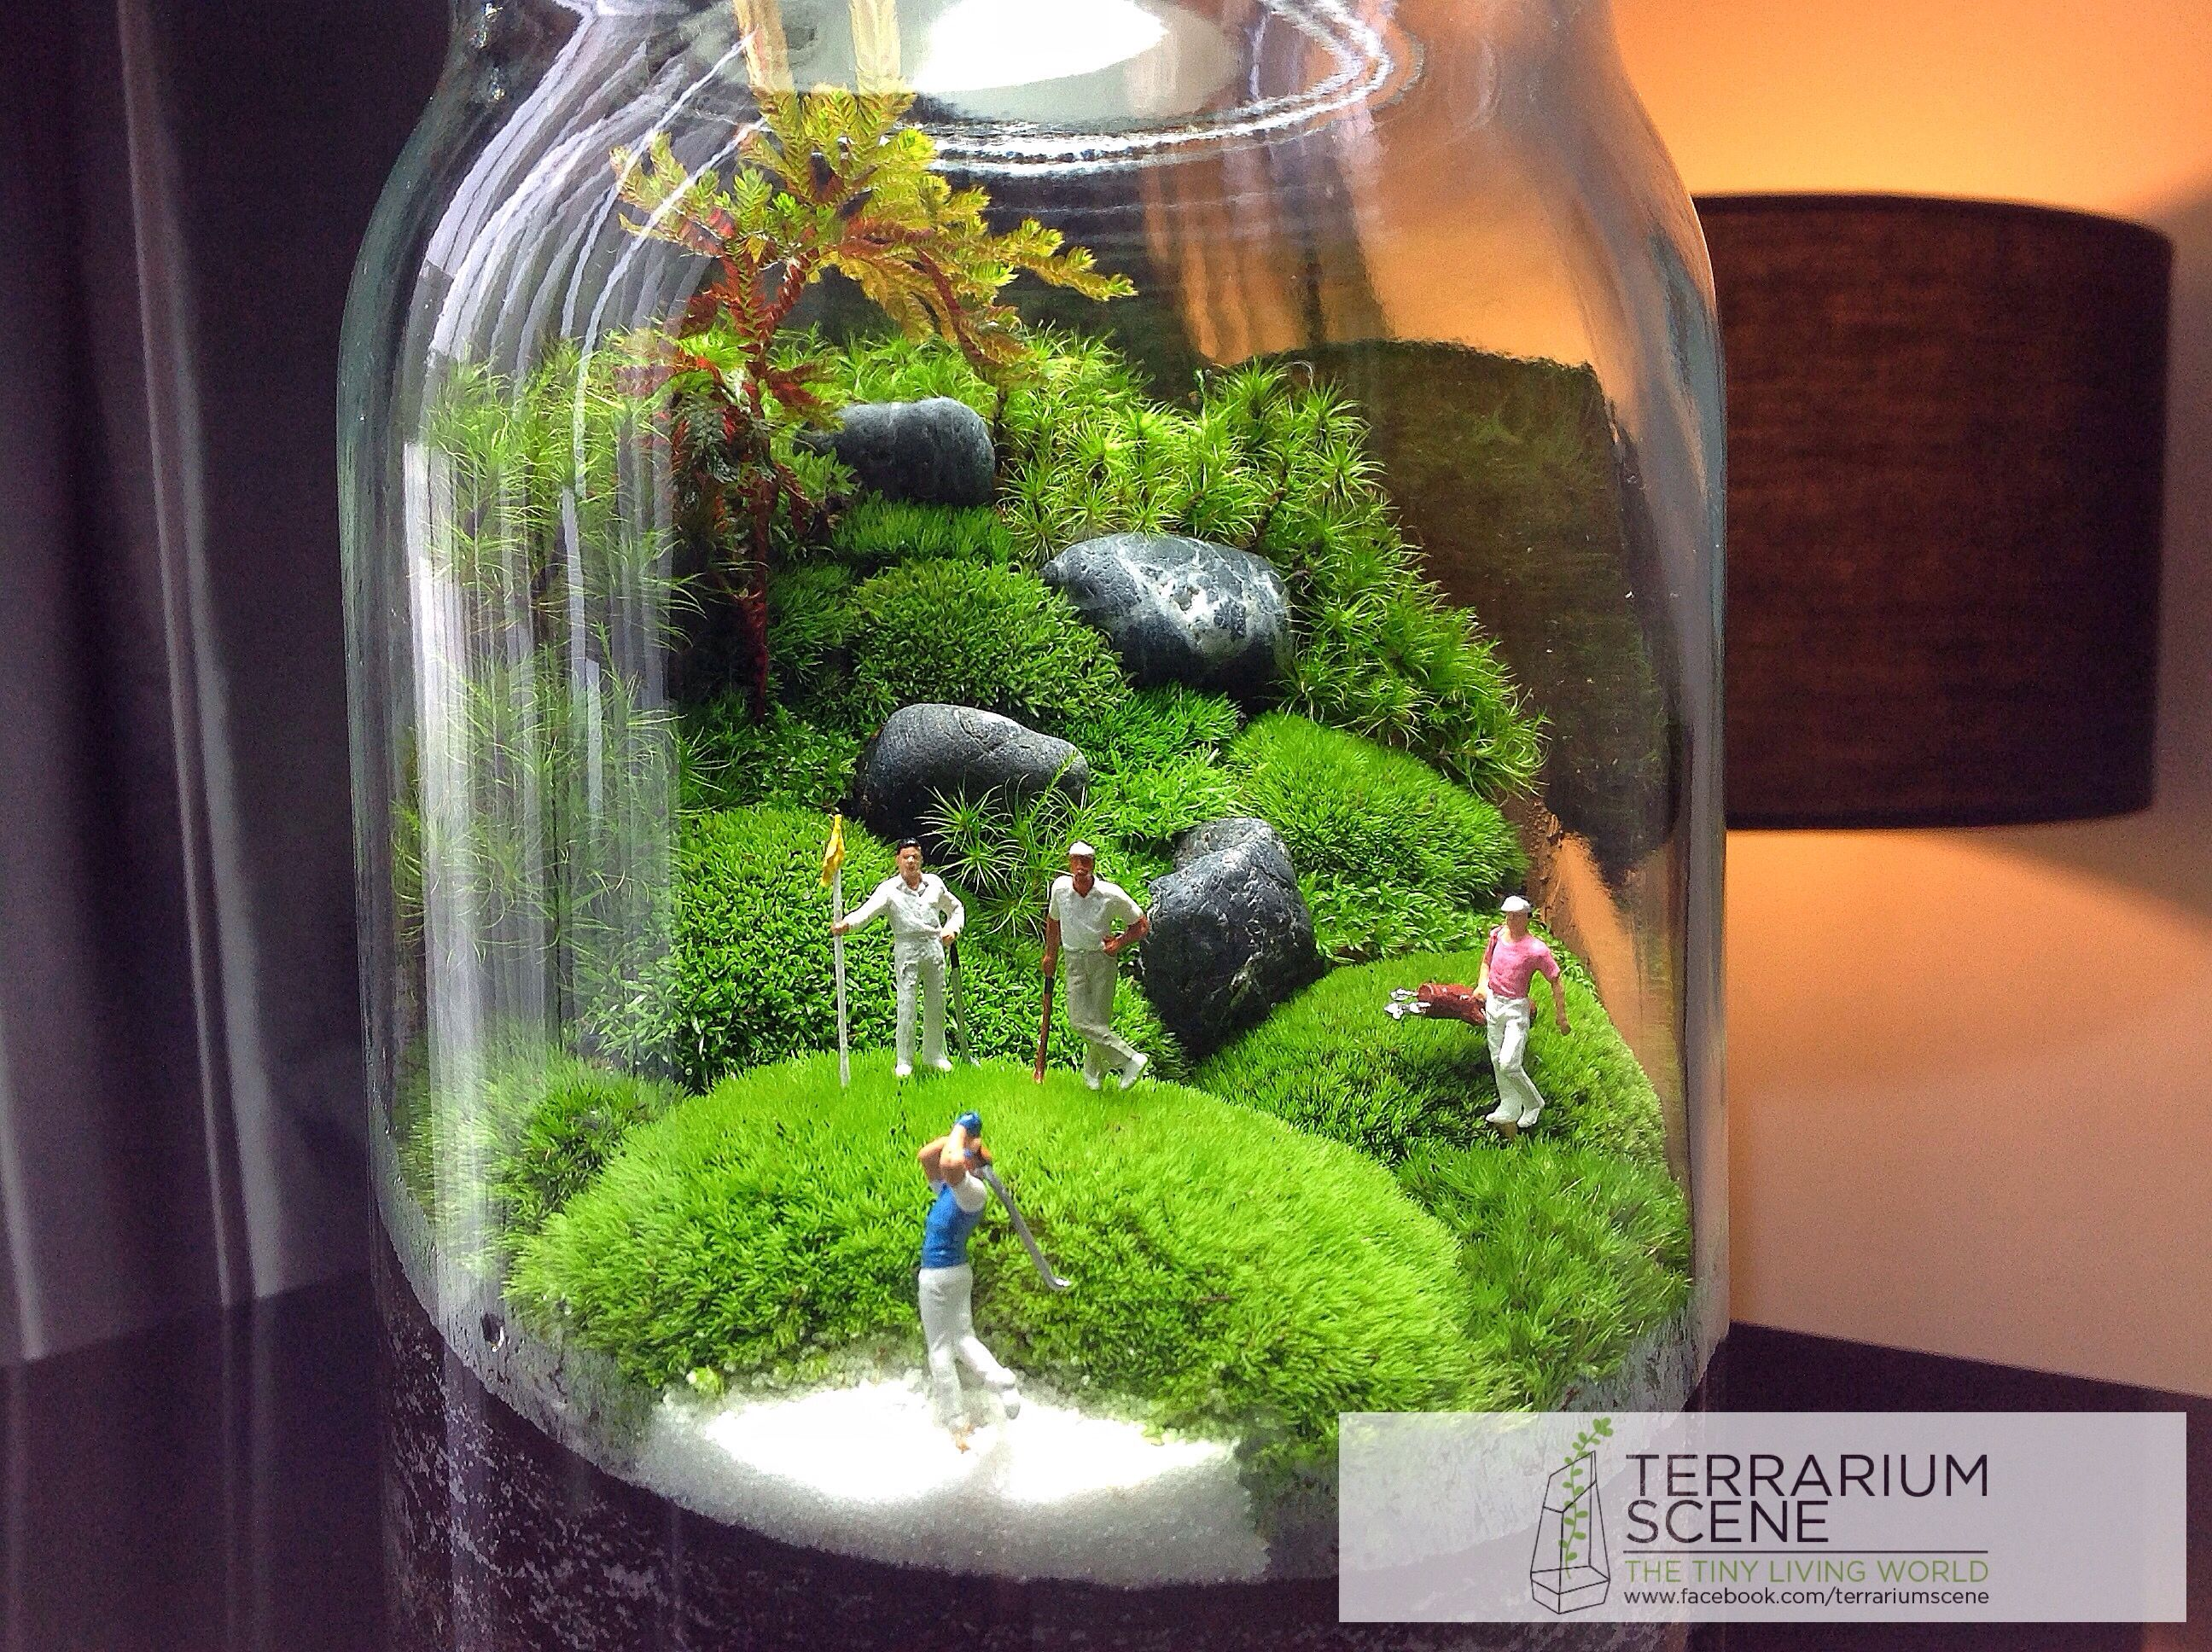 Terrariums cour et jardin pinterest terraria and gardens